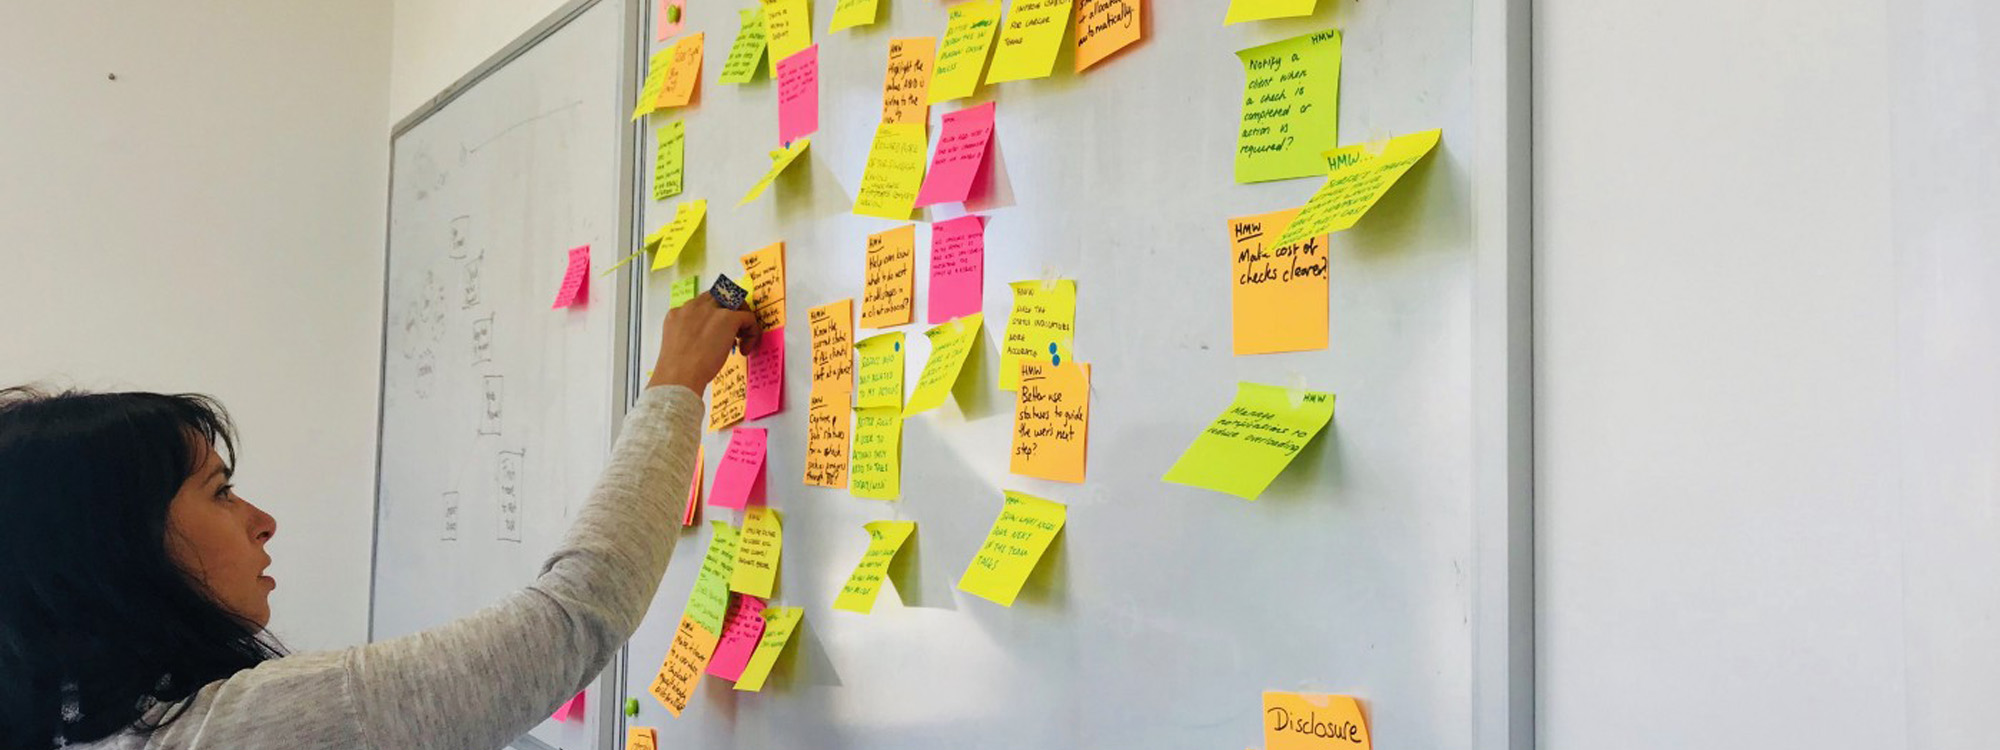 Design sprint post-it board